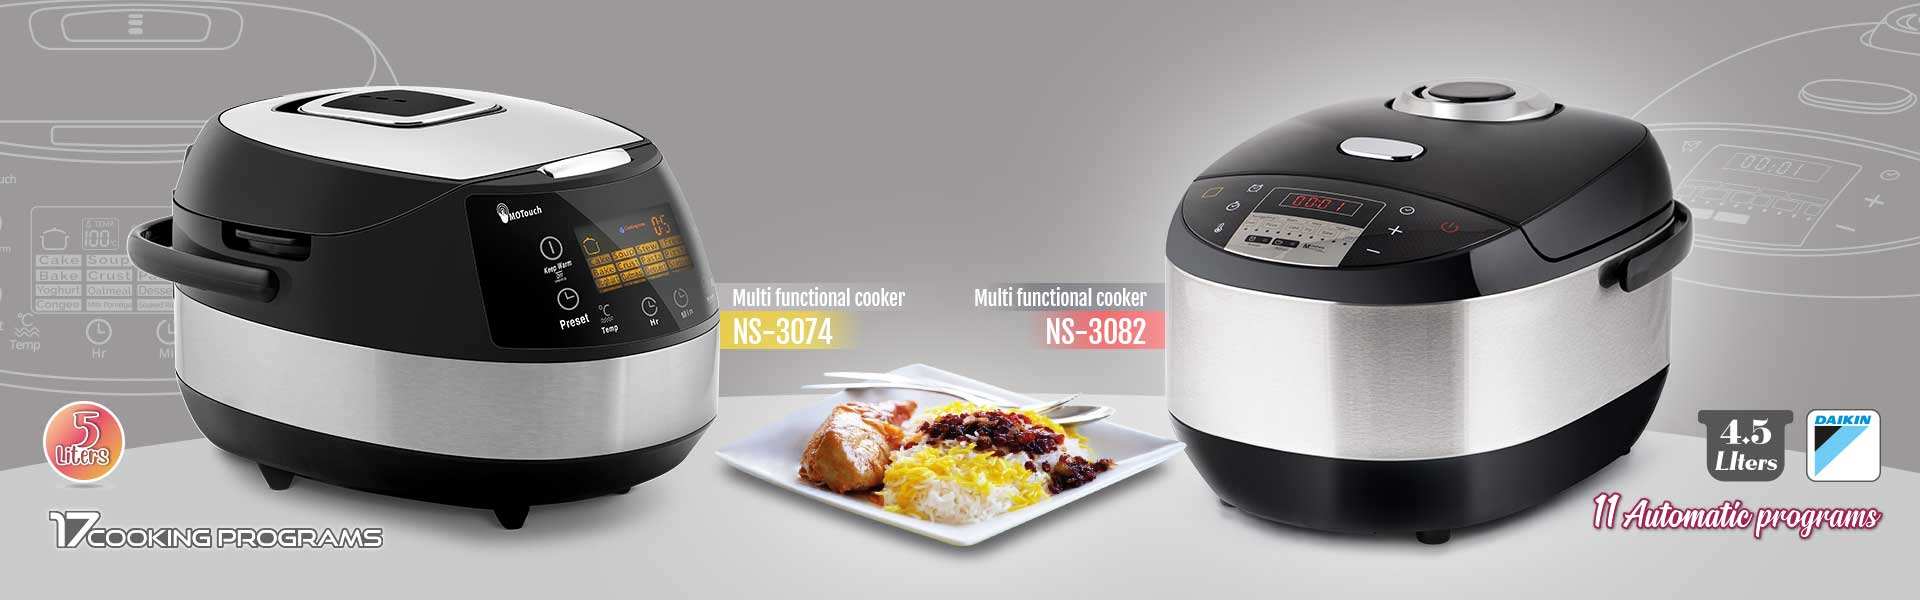 Multi-functional cookers PS-3082, PS-3074